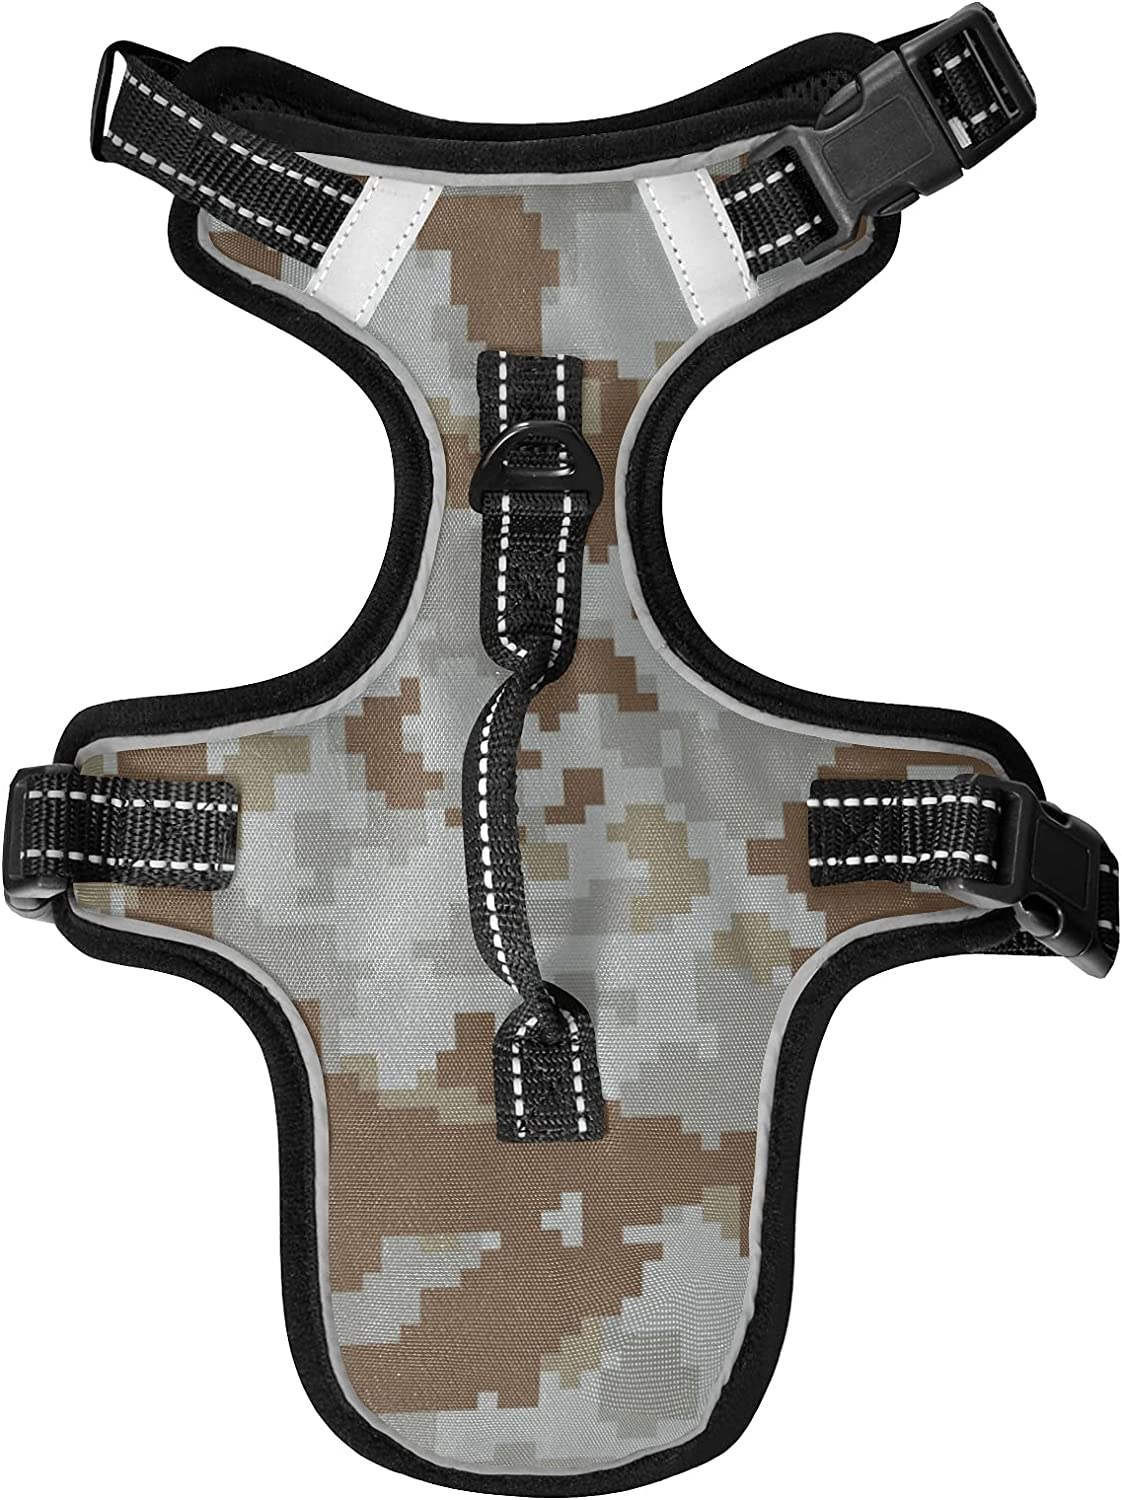 KFBE Digital Camouflage Cat Large discharge sale Max 62% OFF Harnesses Lea and Dog Vest